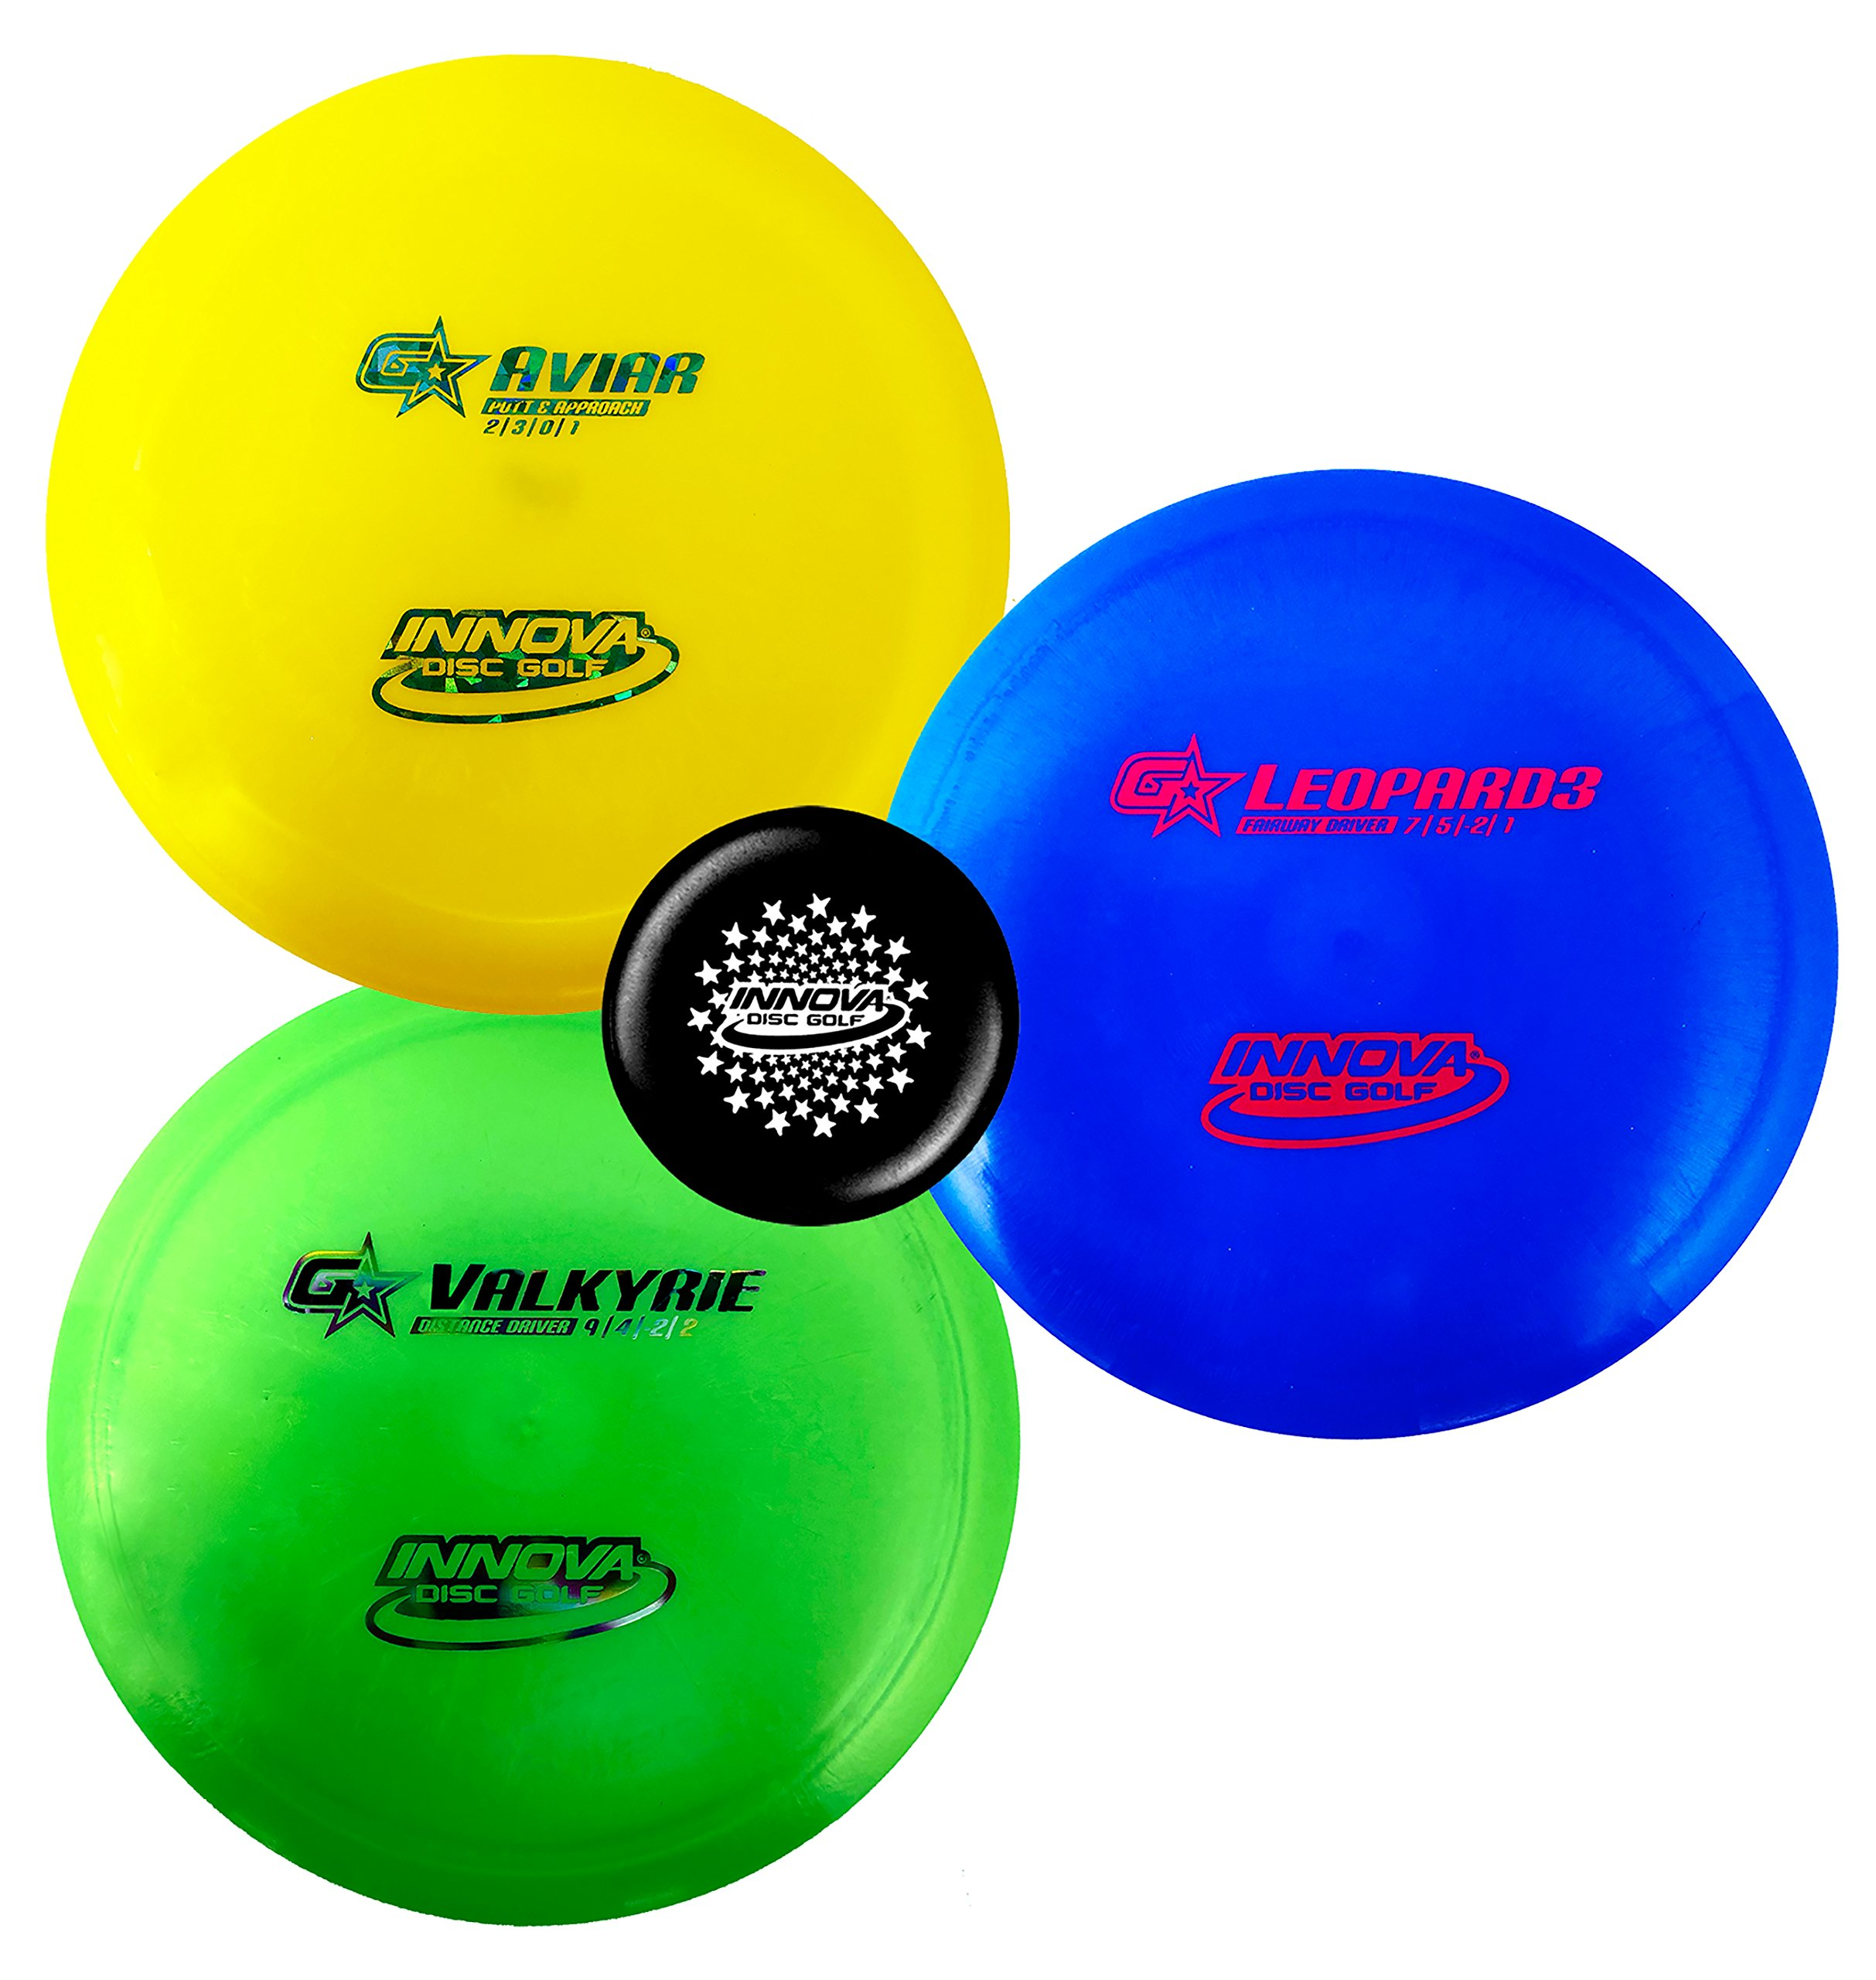 Innova Premium Beginner's Disc Golf Set - GStar Putter, Mid-Range, Driver - Durable, Flexible and Supple Plastic- Colors Will Vary - 150-169g (3 Pack) by Innova Discs